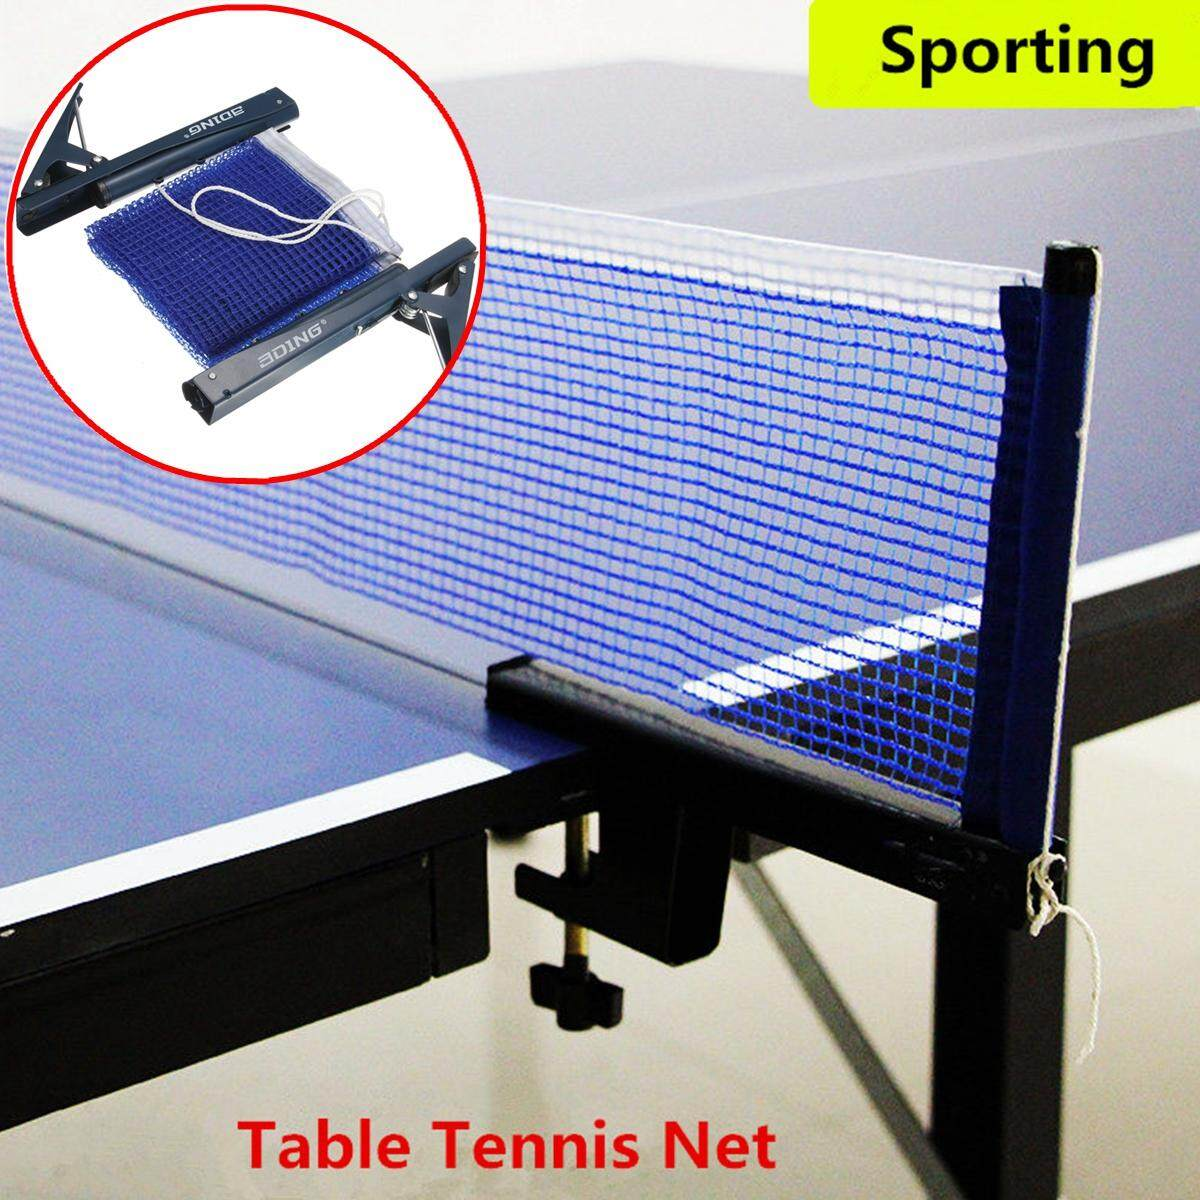 Portable Table Tennis Ping Pong Net Post Clamp Stand Holder Mesh Rack Replaces By Freebang.